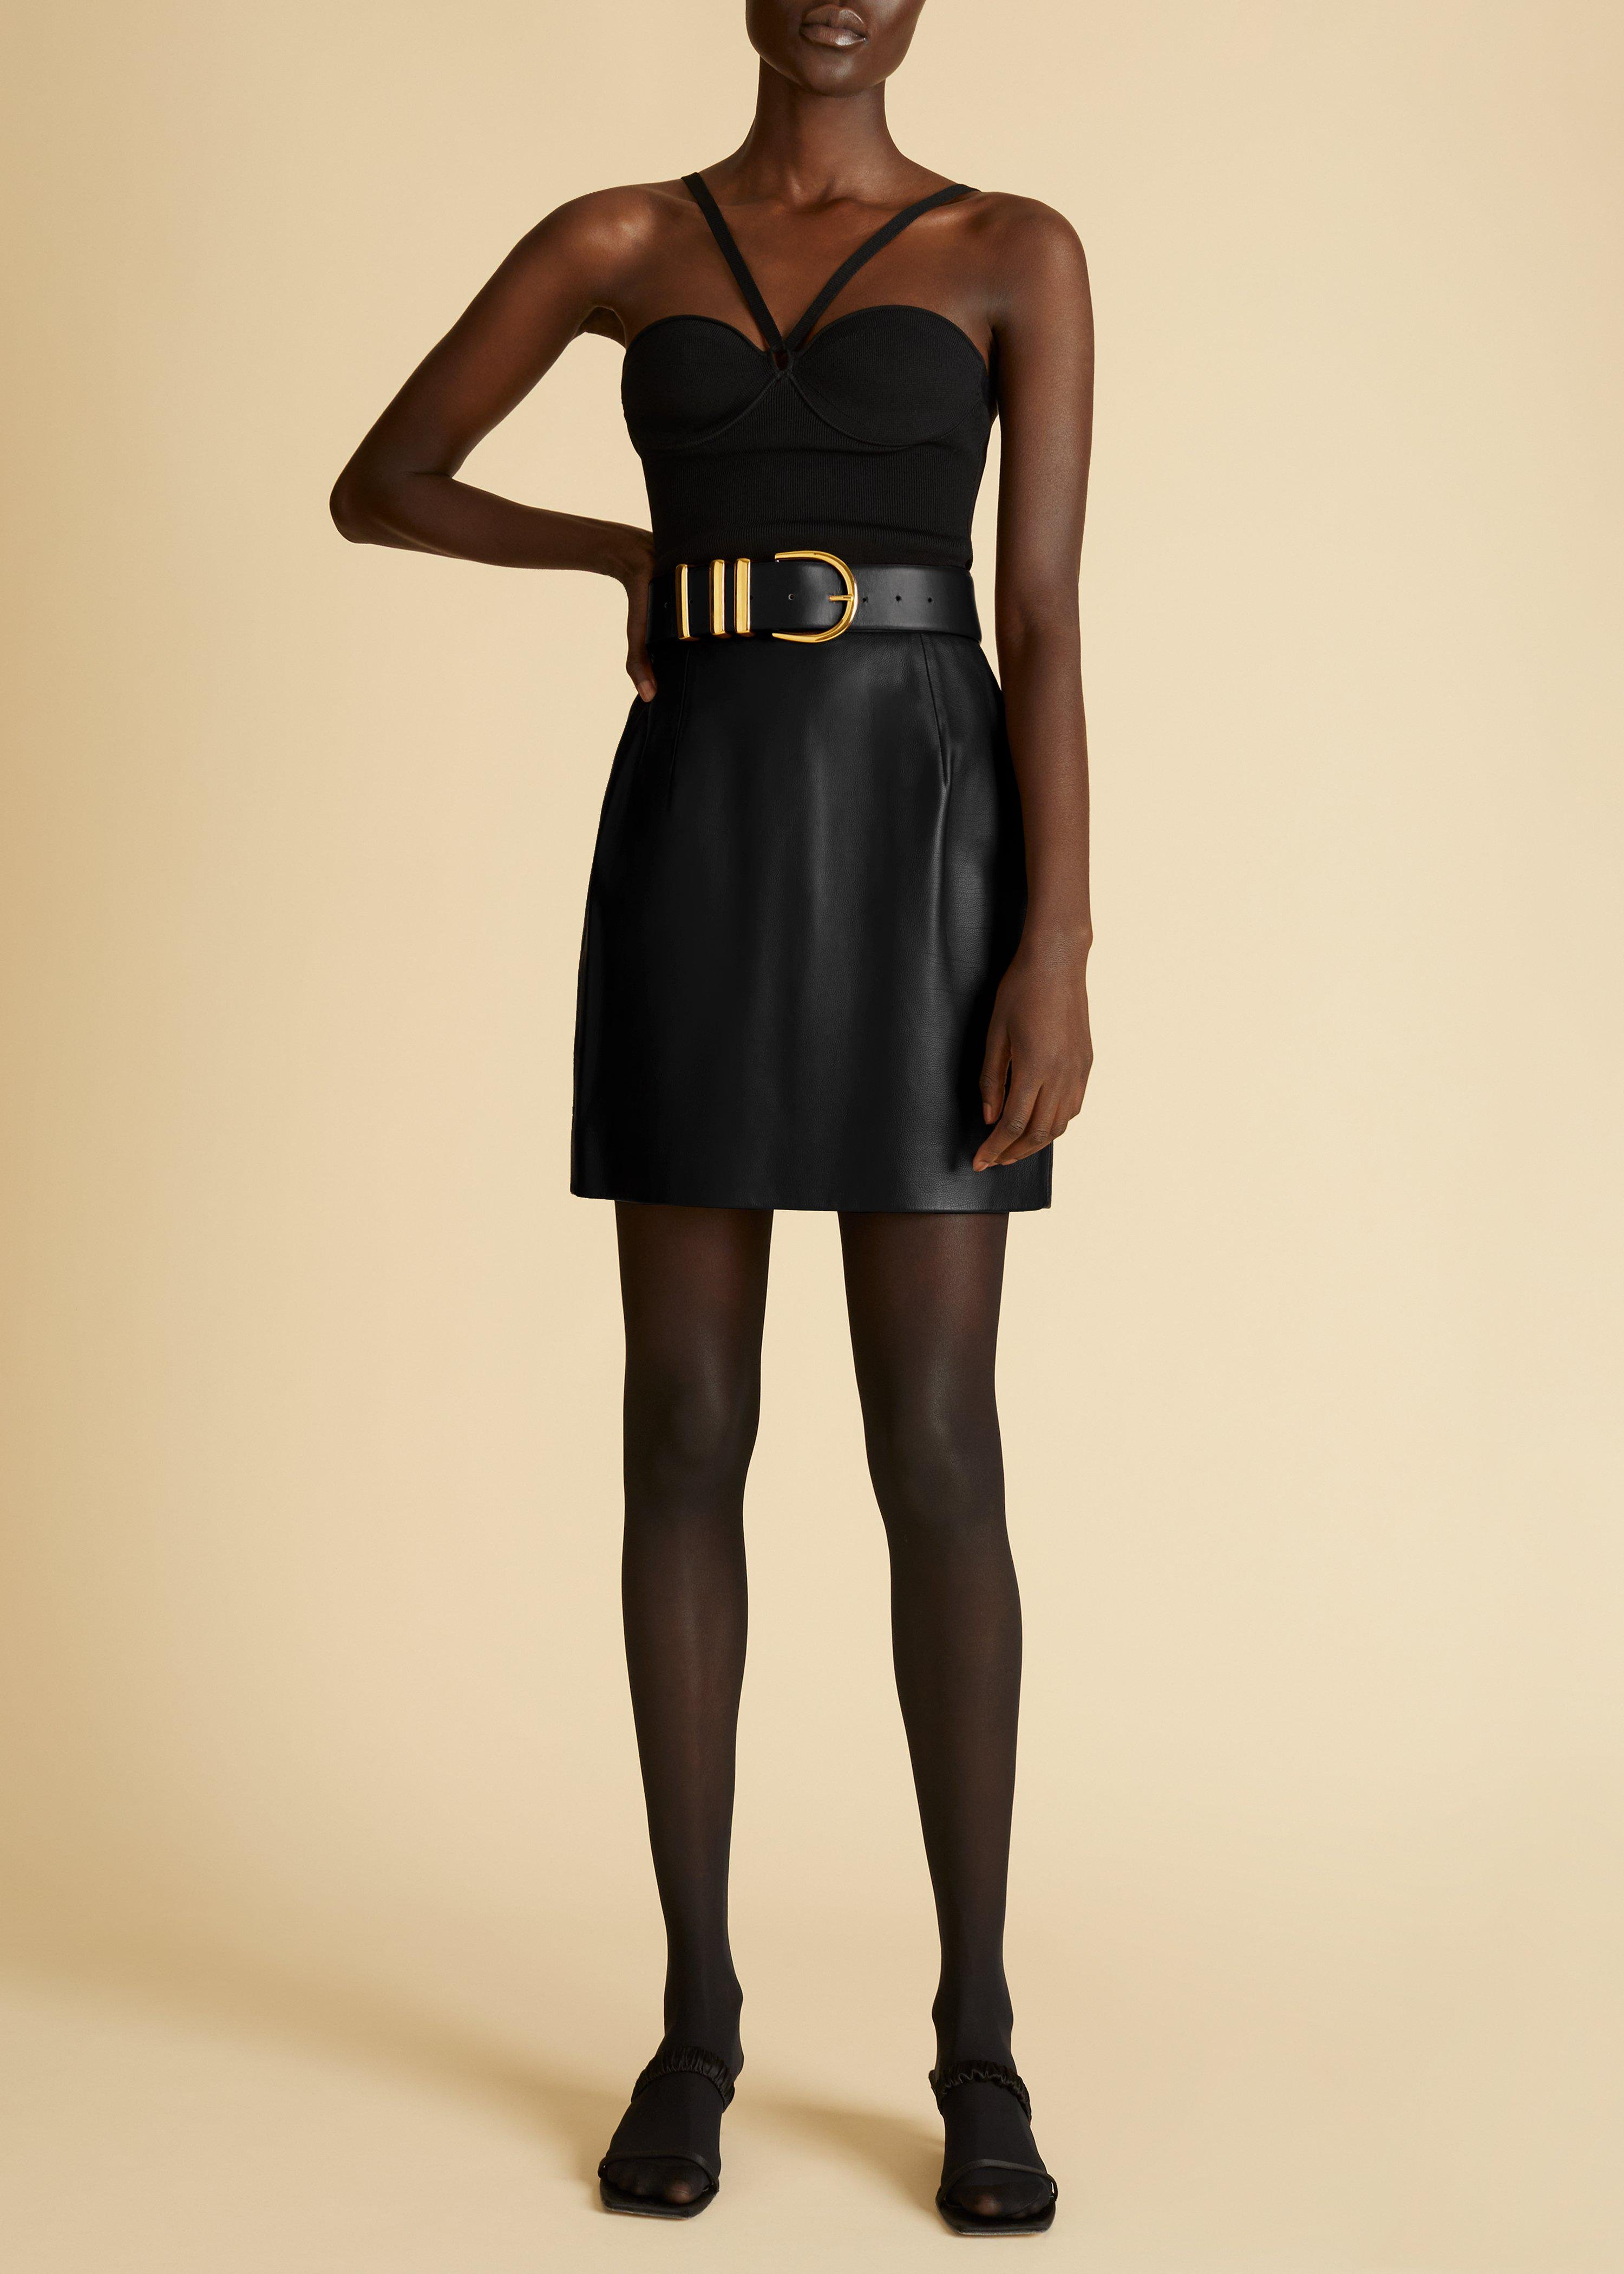 The Eiko Skirt in Black Leather